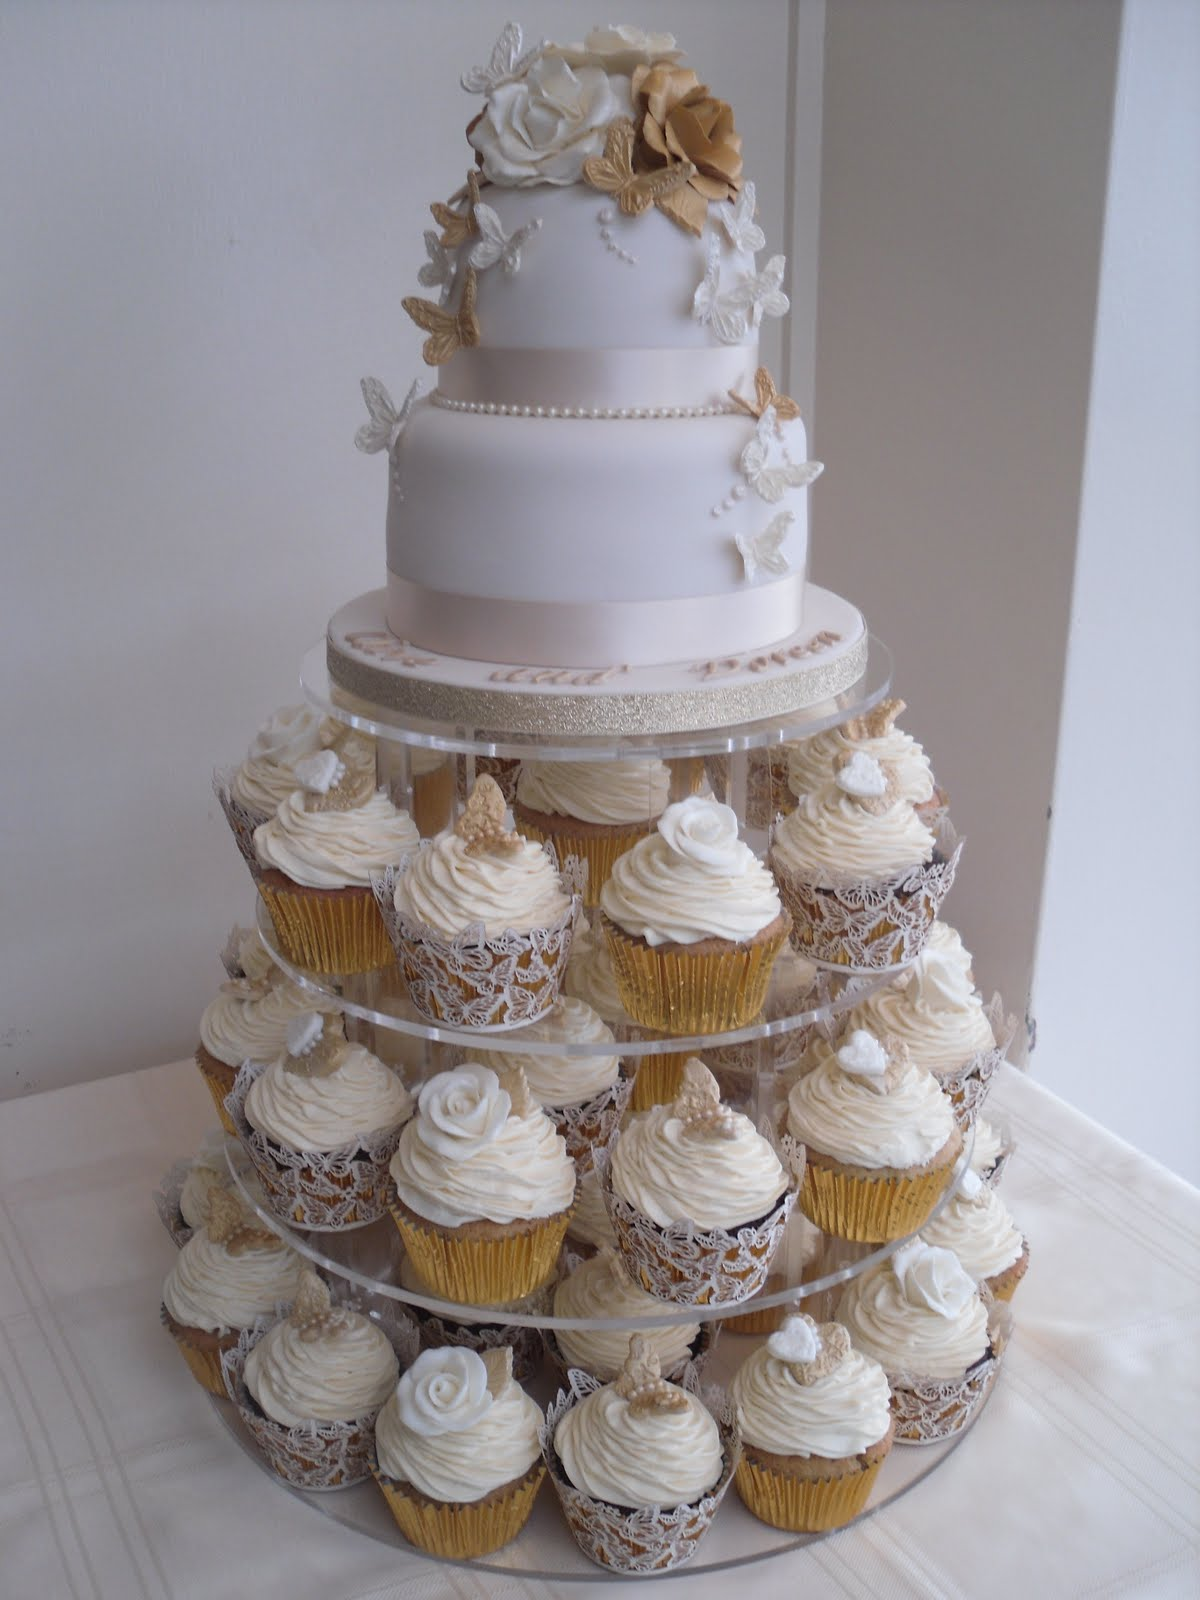 Katies Cupcakes Golden Wedding Anniversary